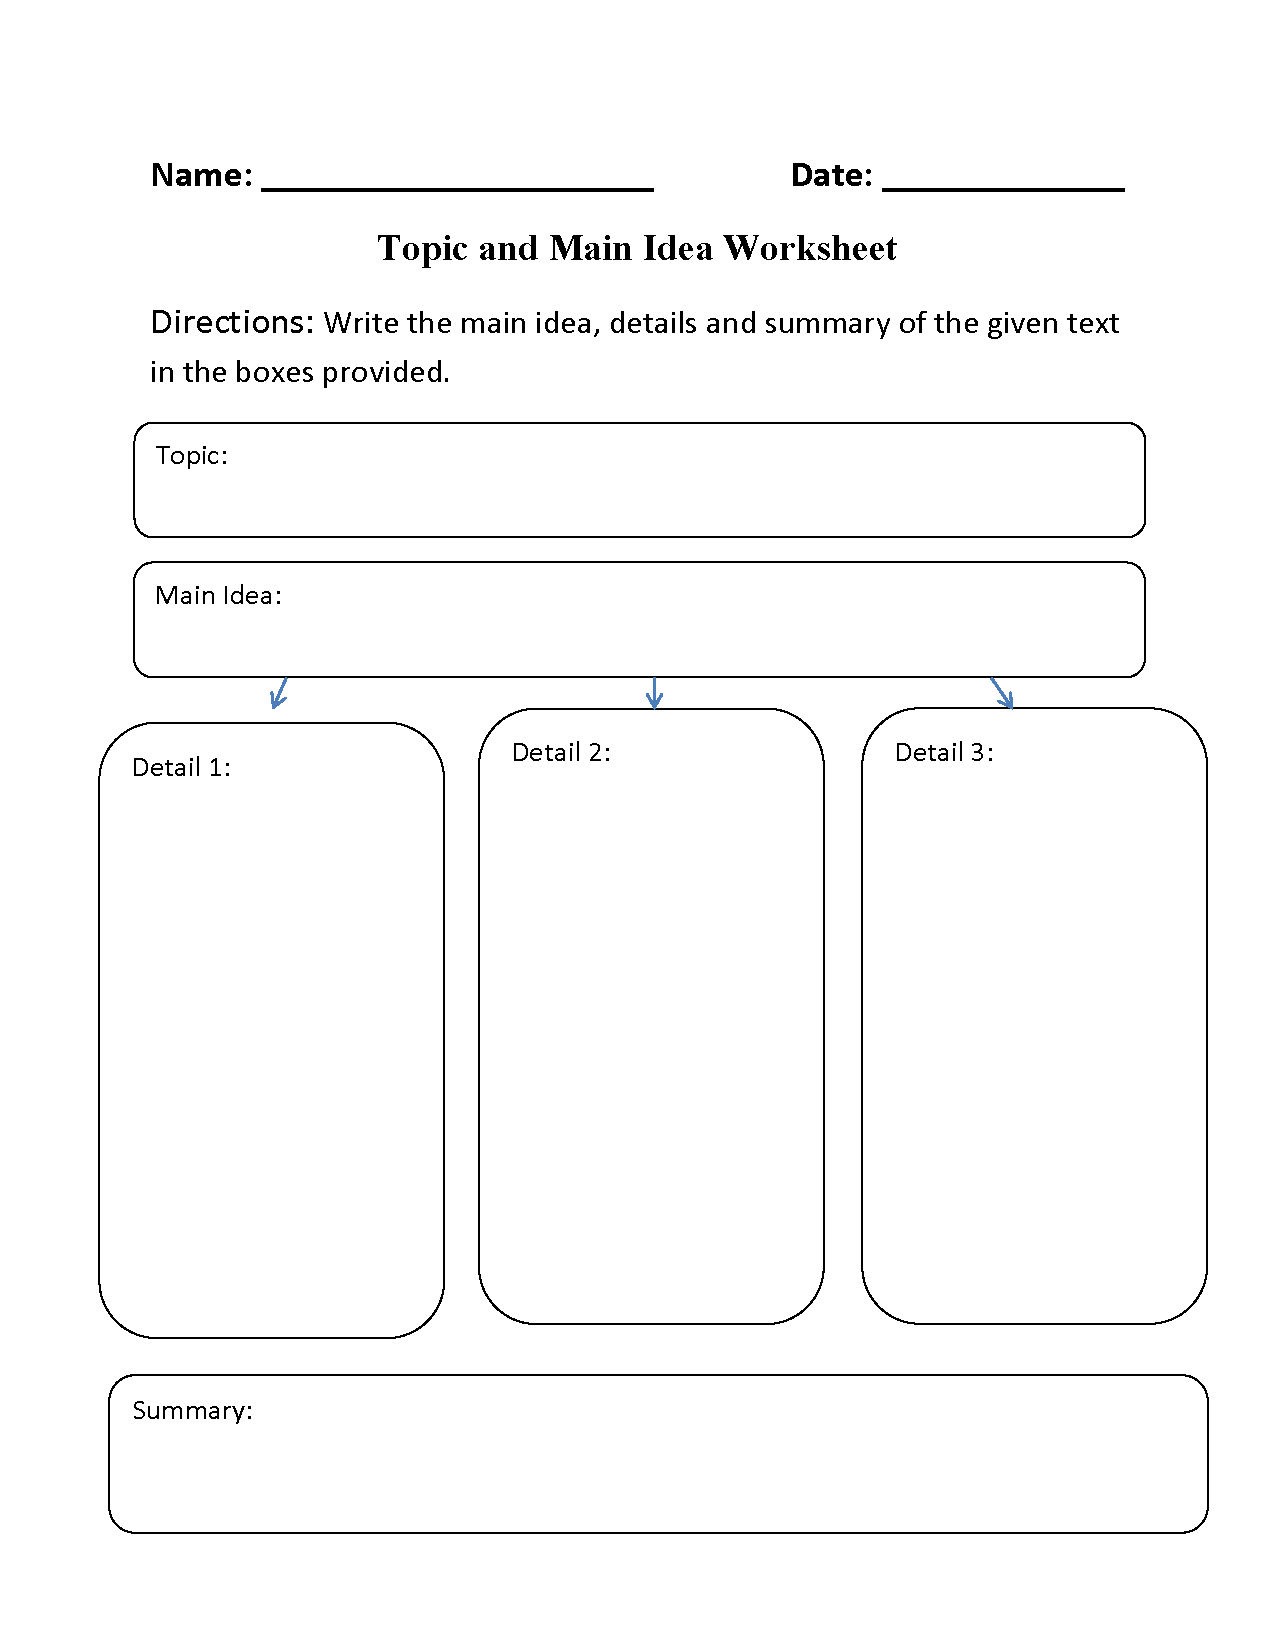 Main Idea Worksheets | Topic And Main Idea Worksheet